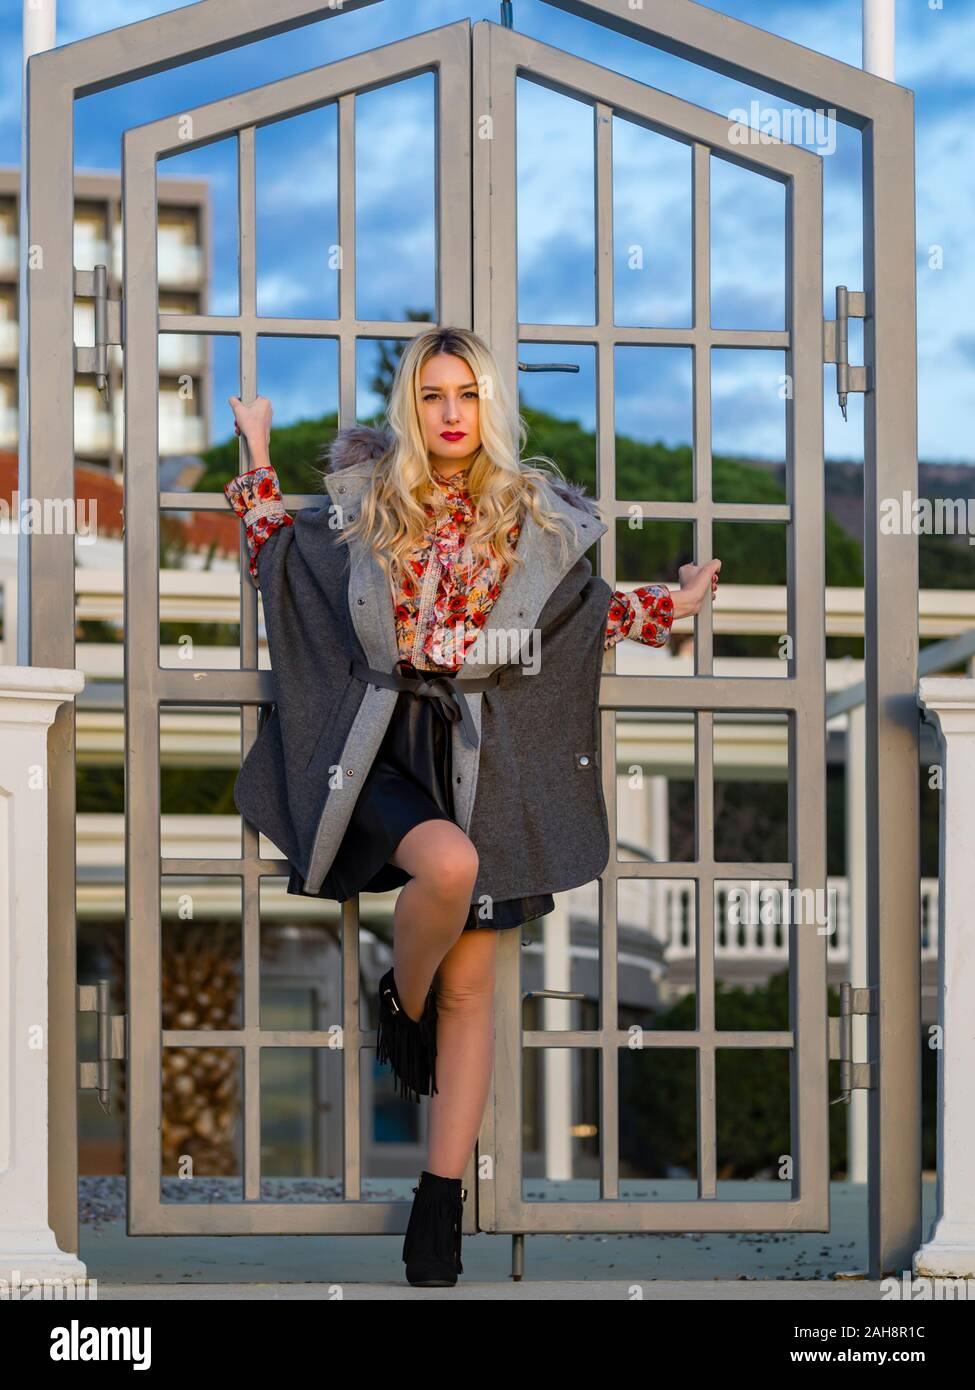 Fanciful blonde young lady spreading on metal fence door entrance looking at camera eyeshot eyes eye-contact serious facing frontal front view Stock Photo